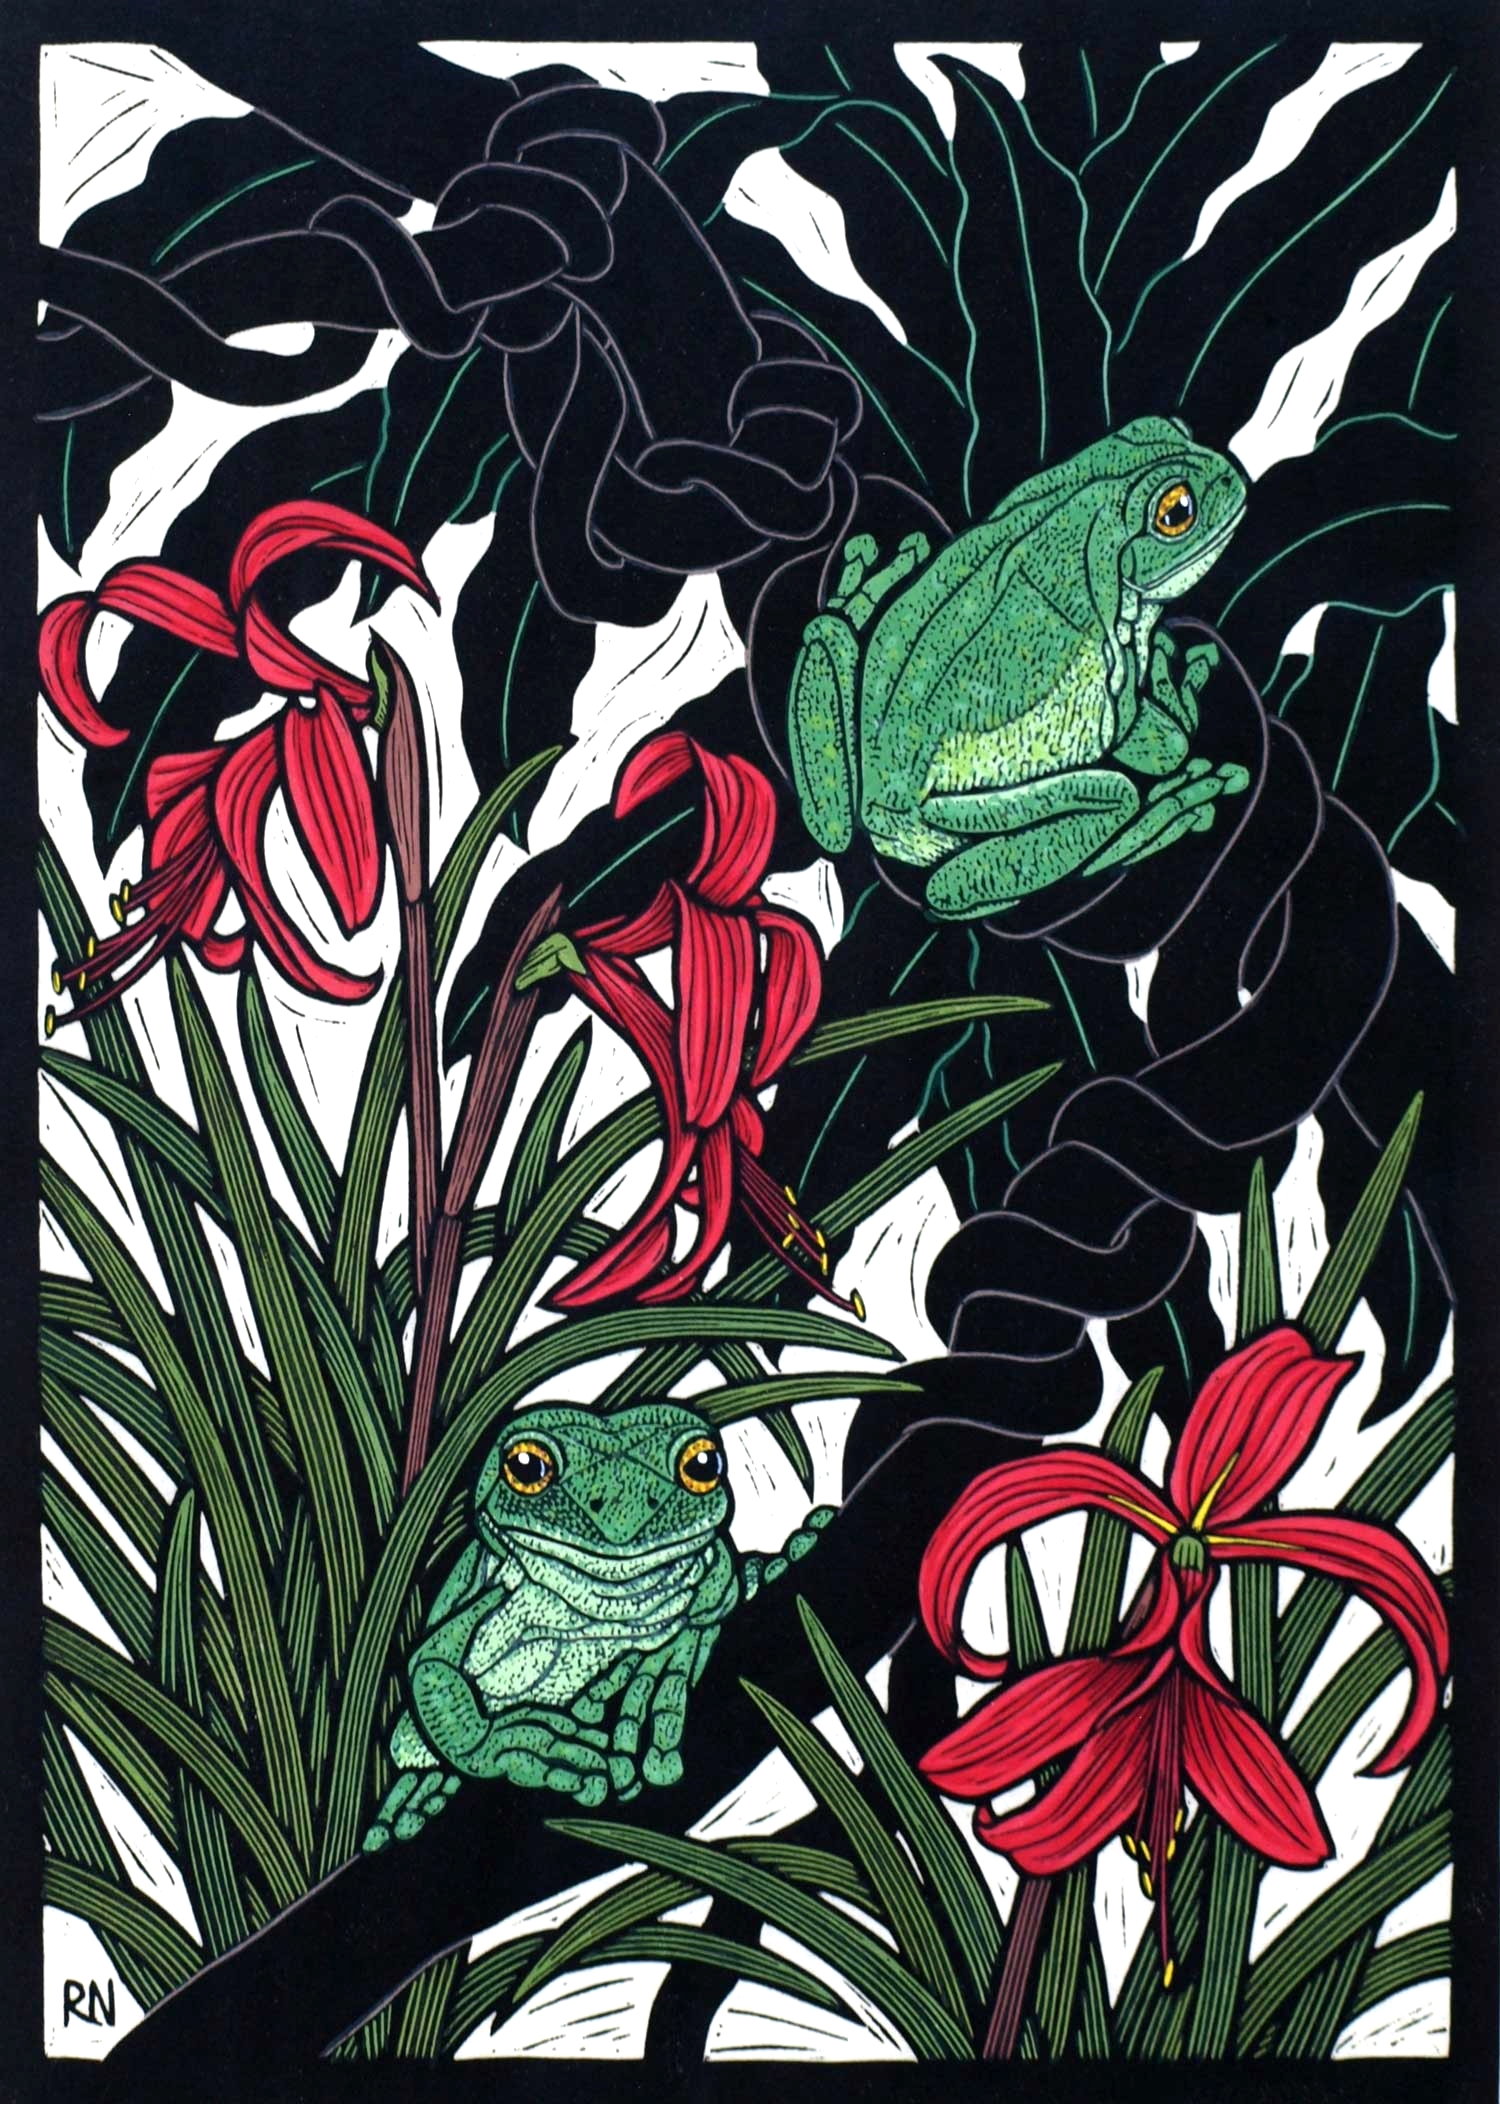 GREEN TREE FROG  49 X 35 CM, EDITION OF 50  HAND-COLOURED LINOCUT ON HANDMADE JAPANESE PAPER  $1,100